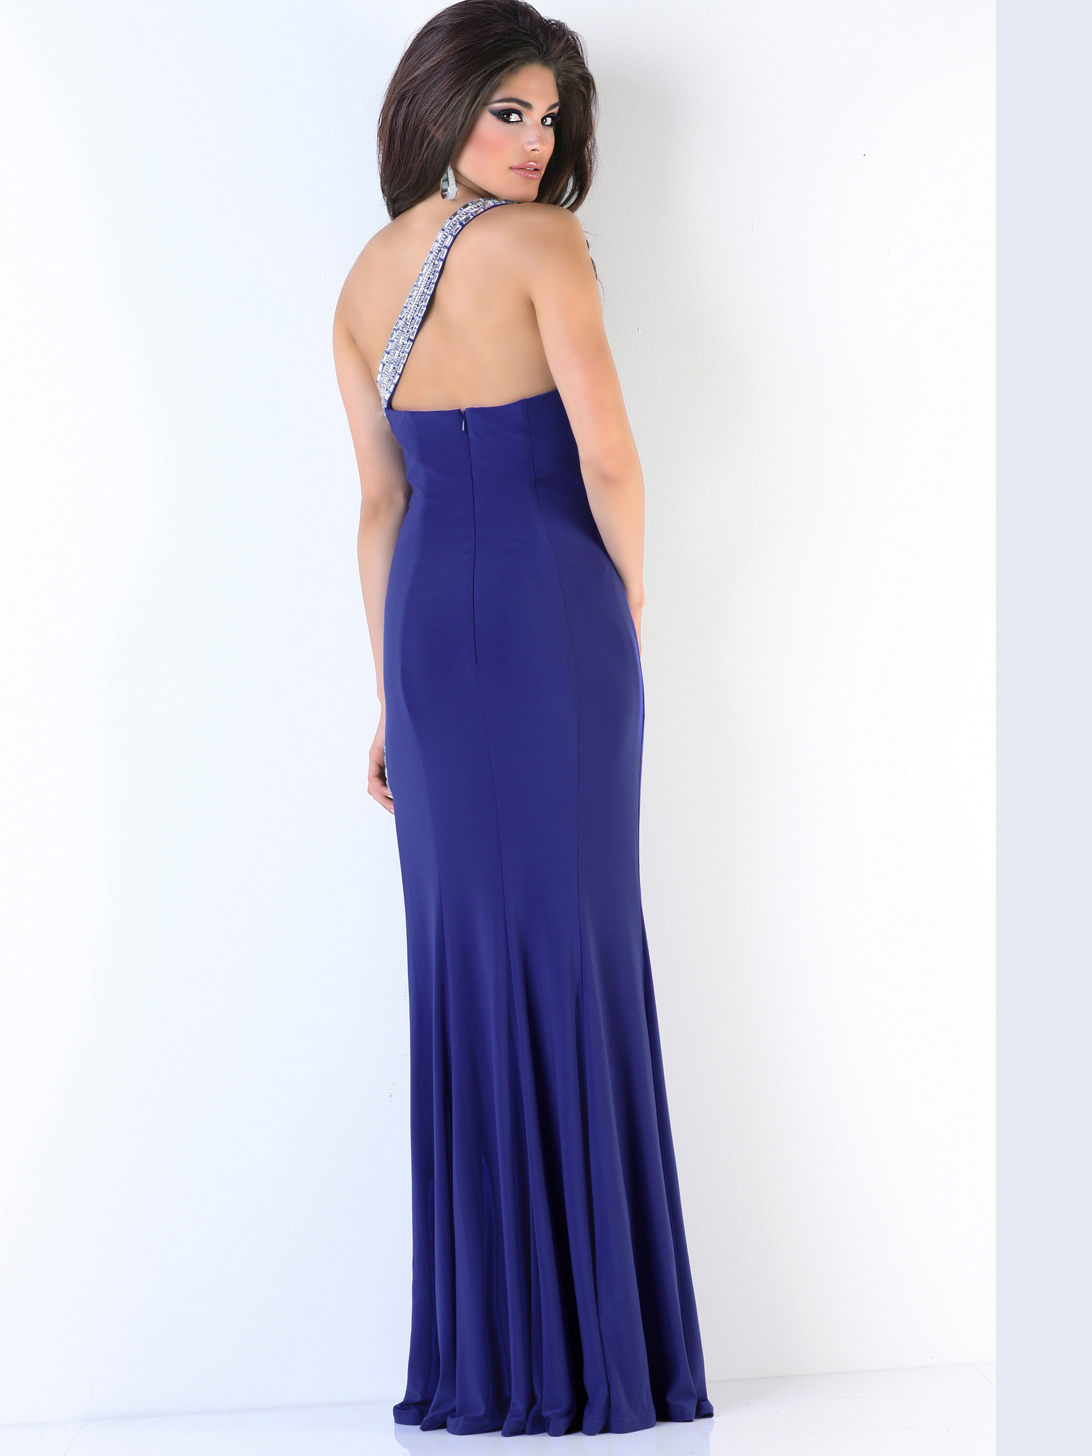 Formal Dresses In Kansas City Missouri 108